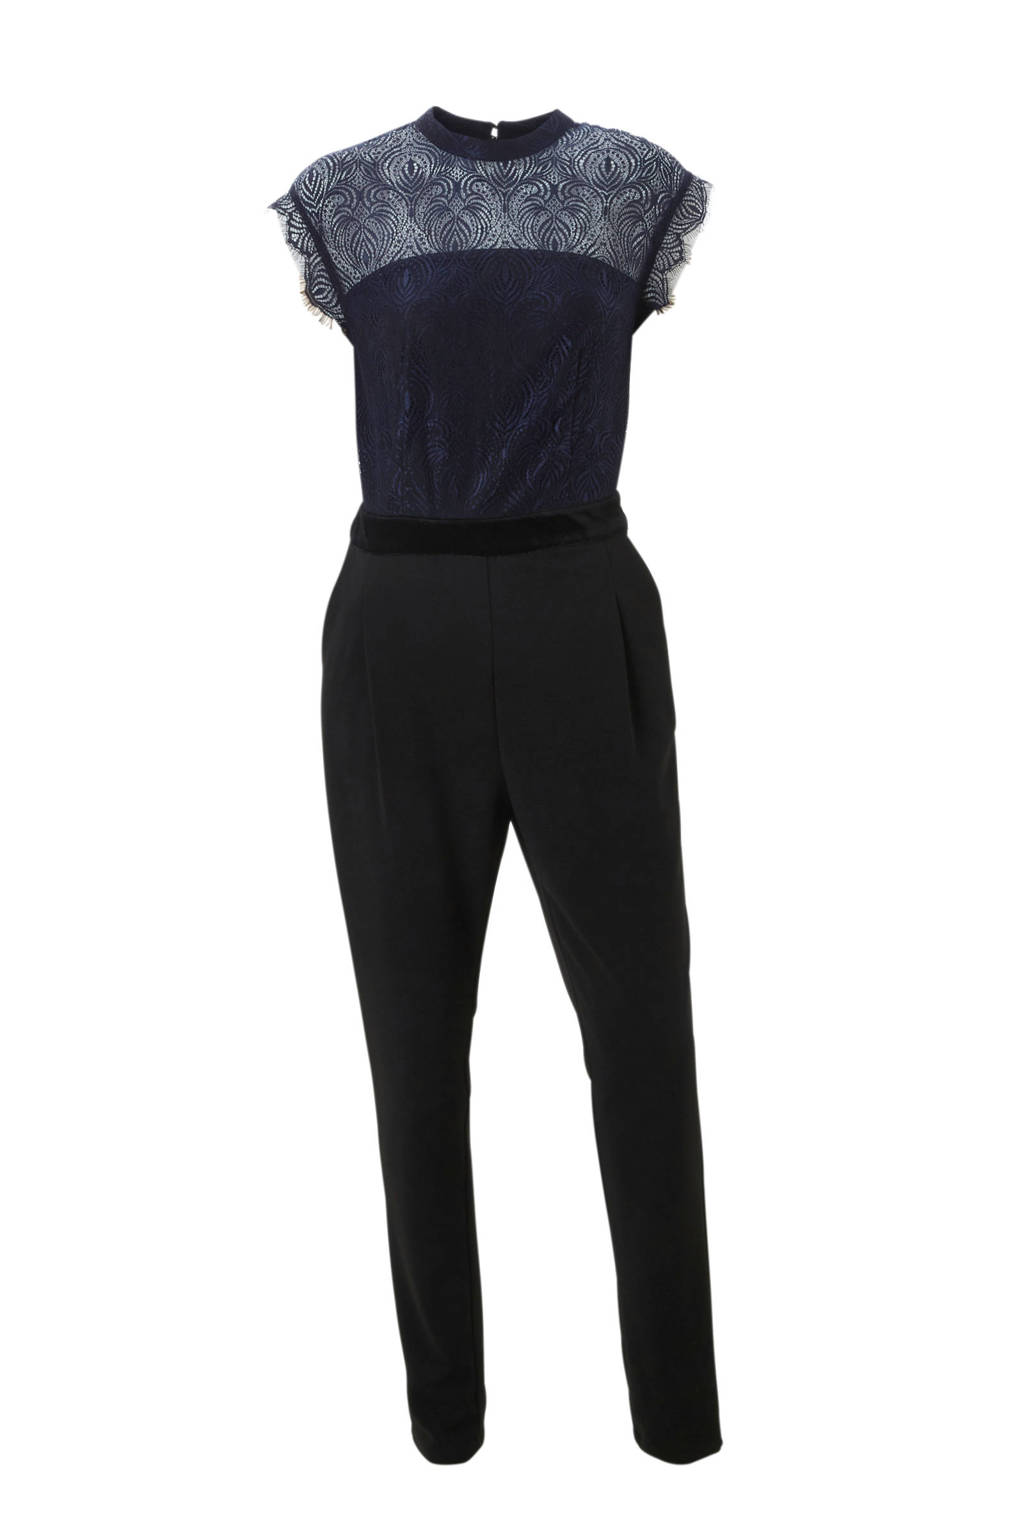 C&A Yessica jumpsuit met kant donkerblauw, Donkerblauw